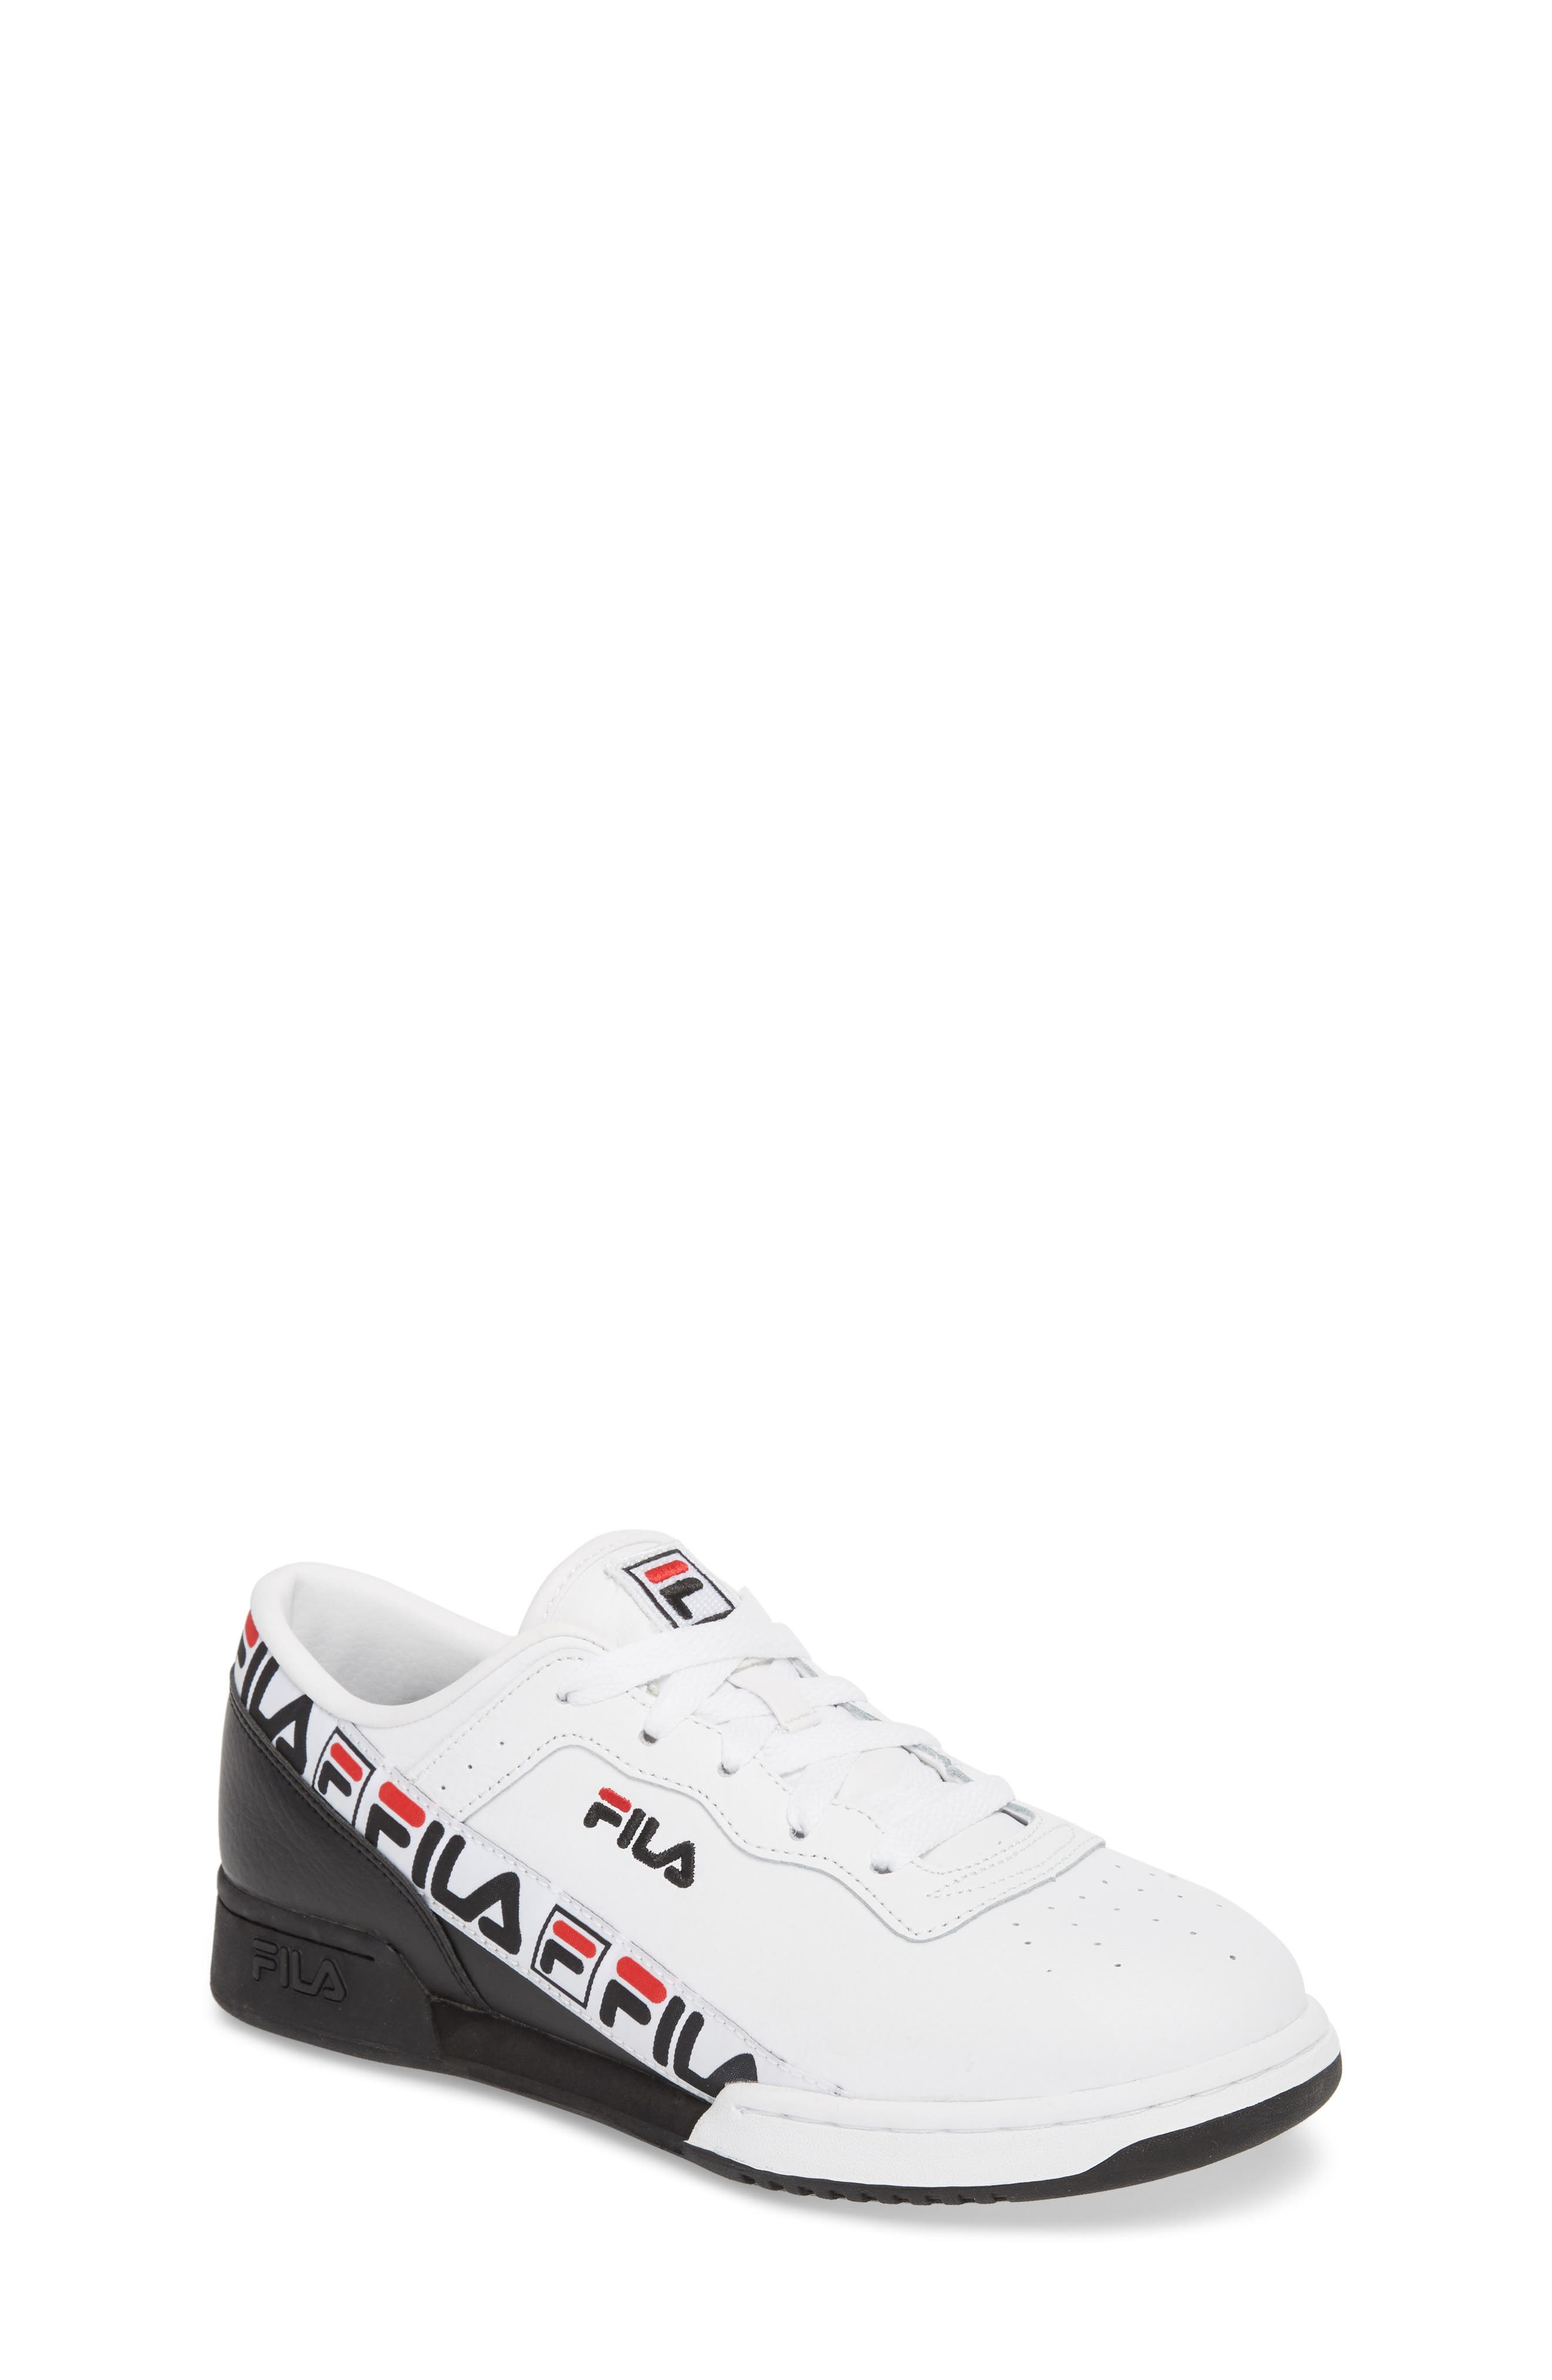 Original Fitness Logo Tape Sneaker,                             Main thumbnail 1, color,                             WHITE/ BLACK/ FILA RED